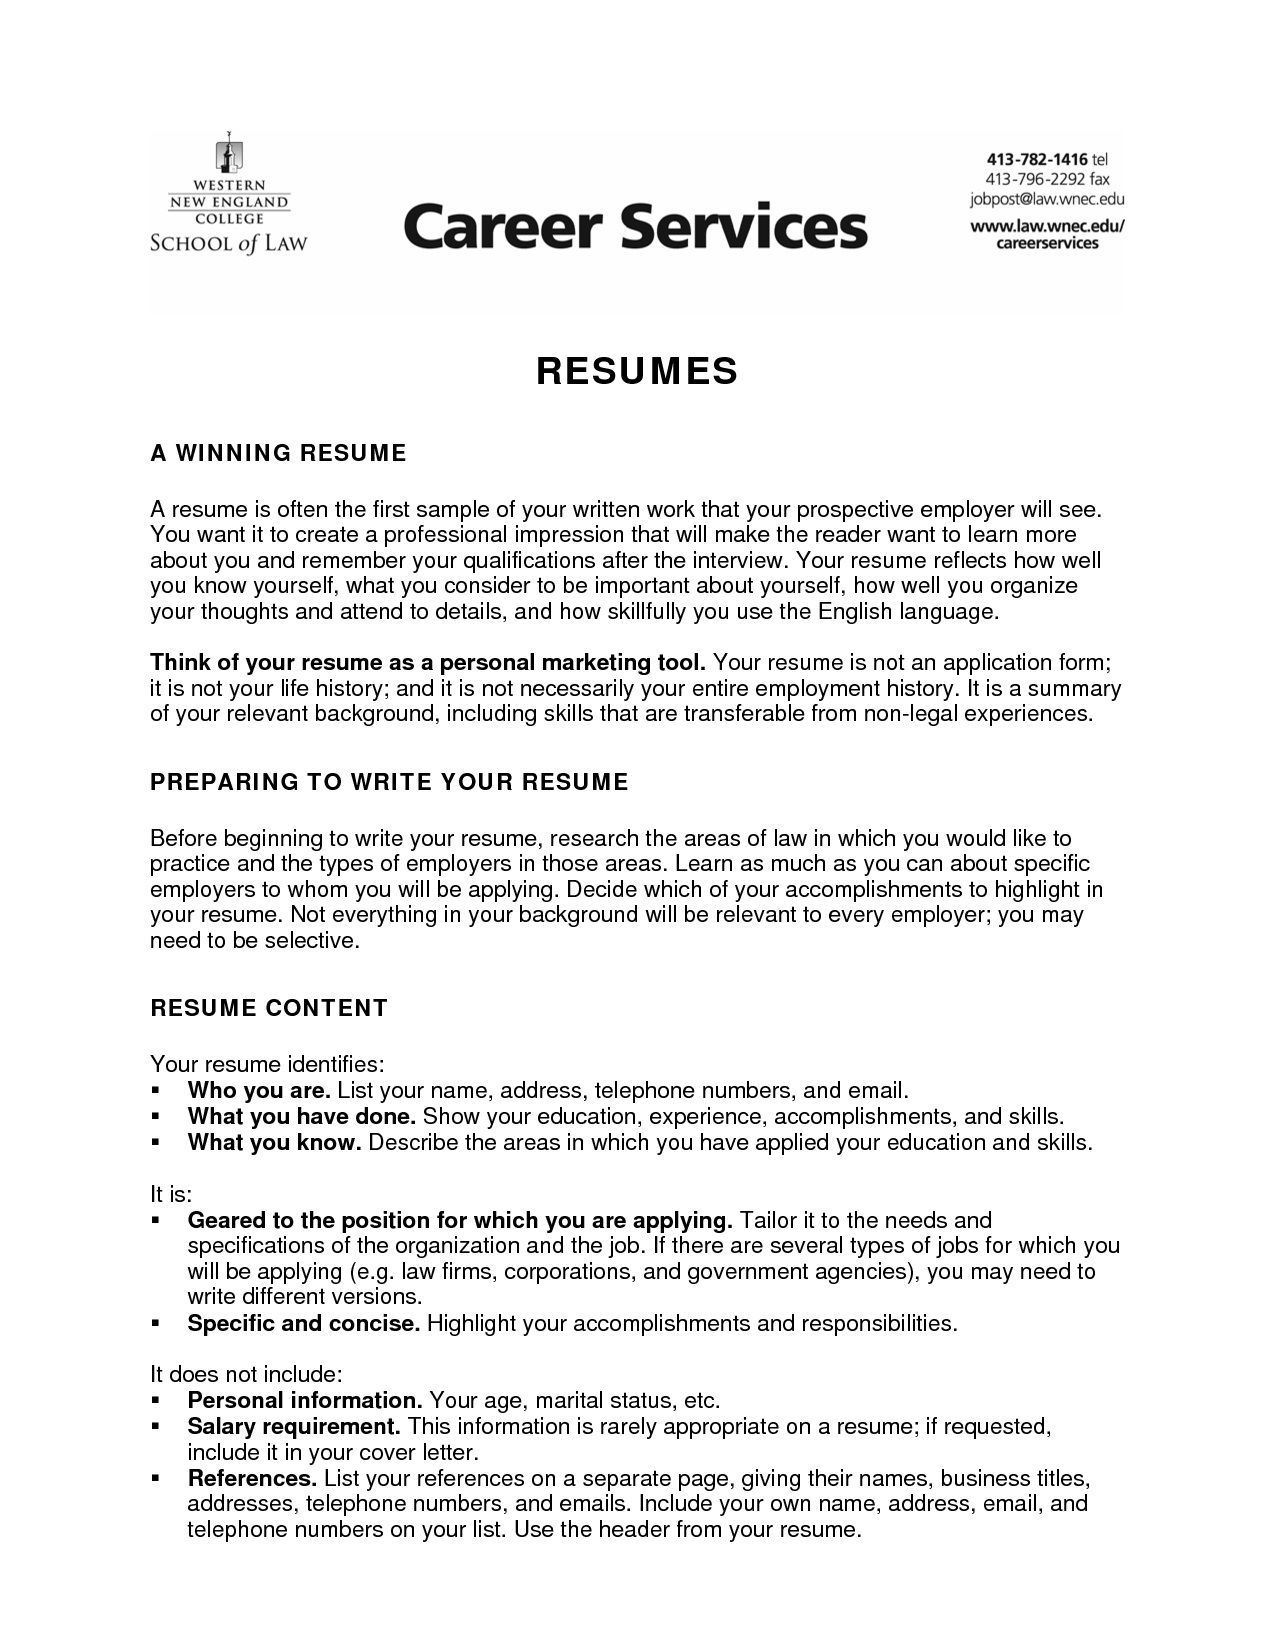 sample resume objective for college student latest format job ...